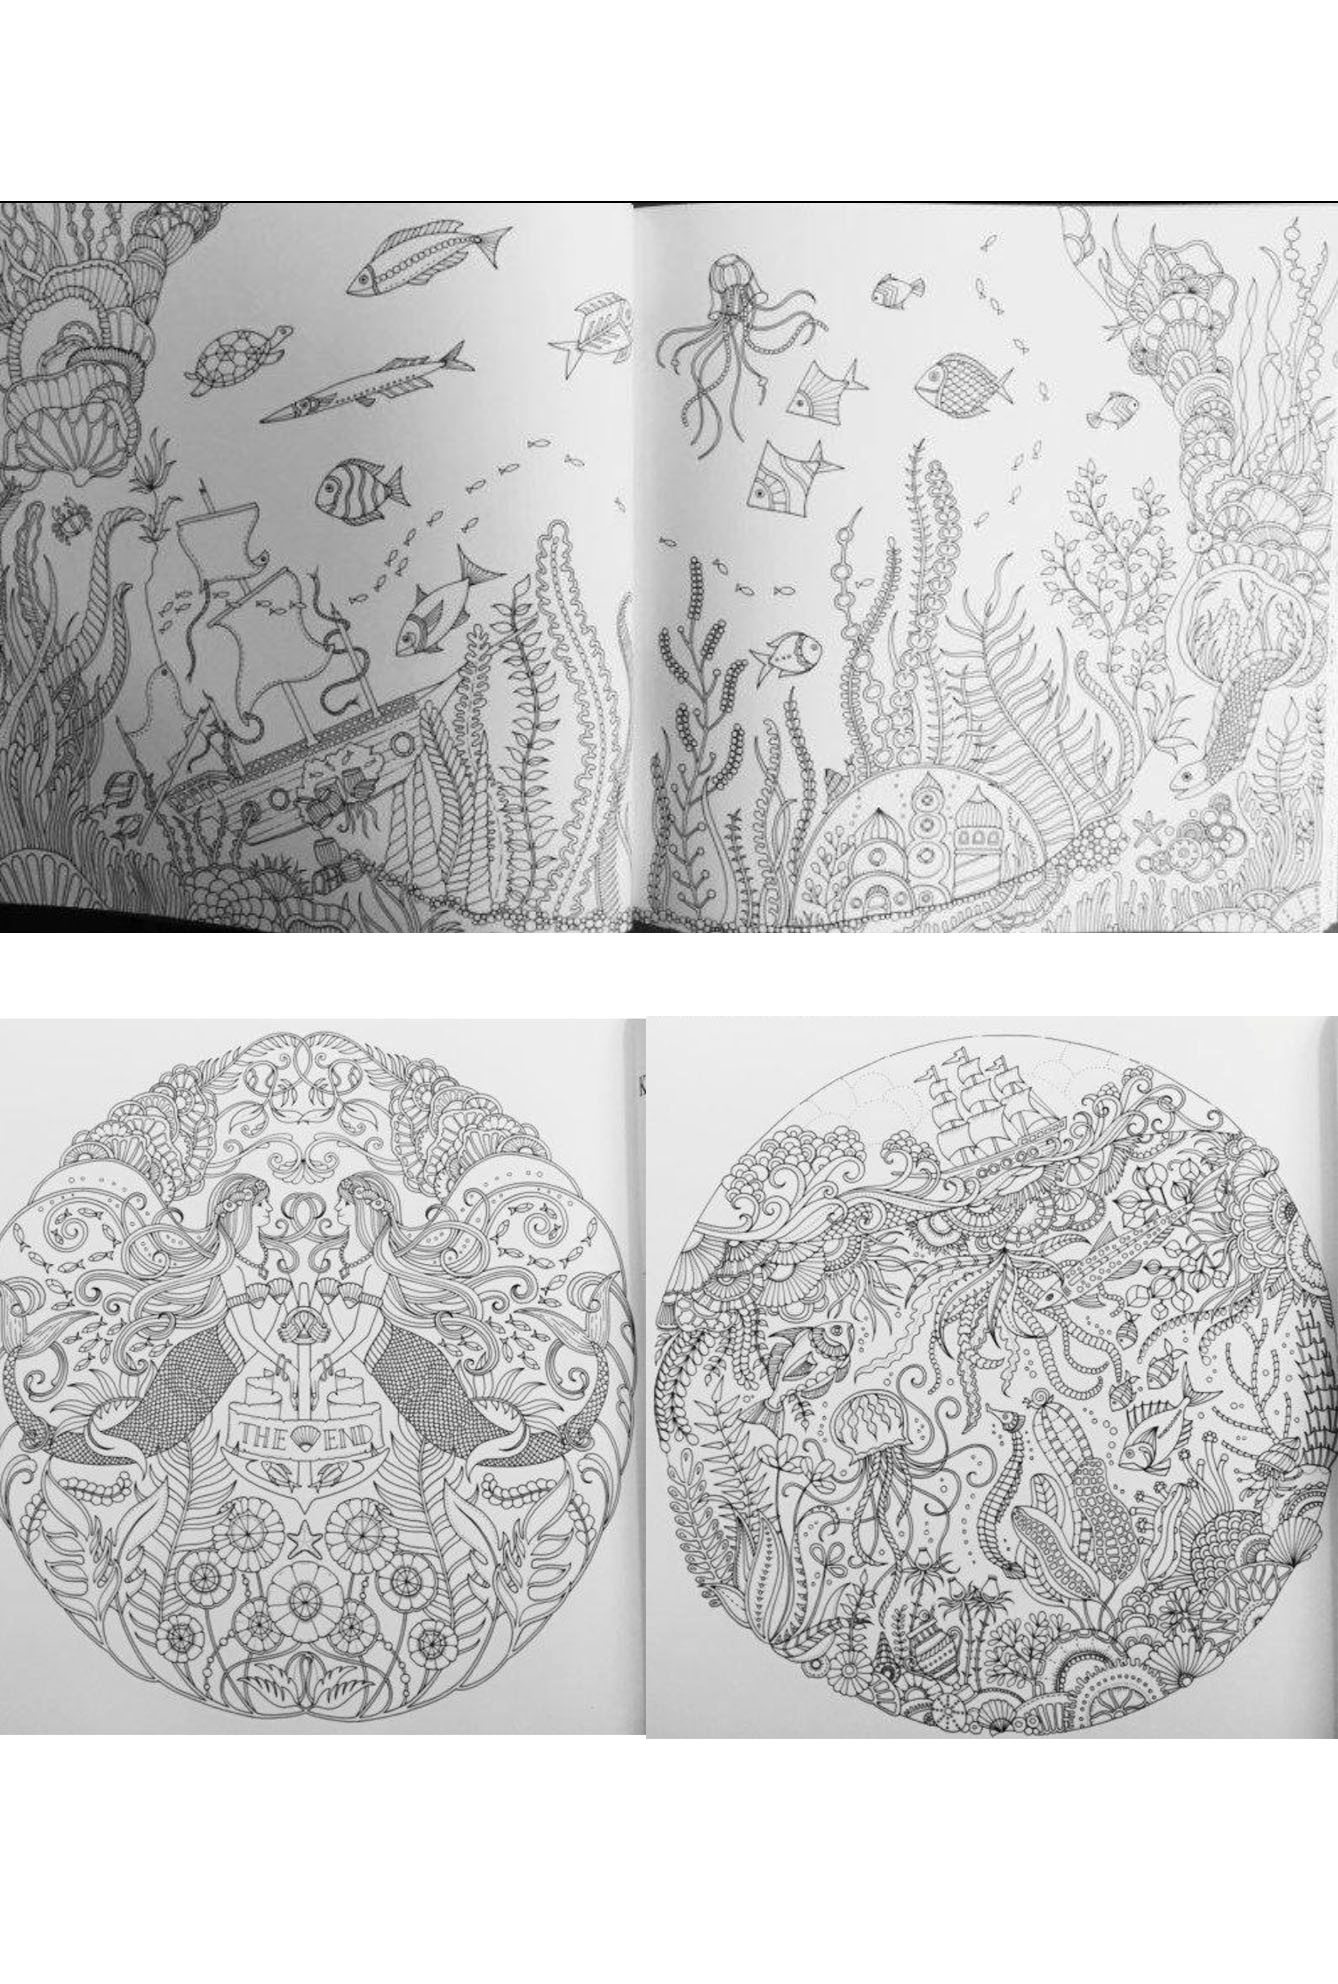 lost ocean adult coloring book - Ocean Coloring Book